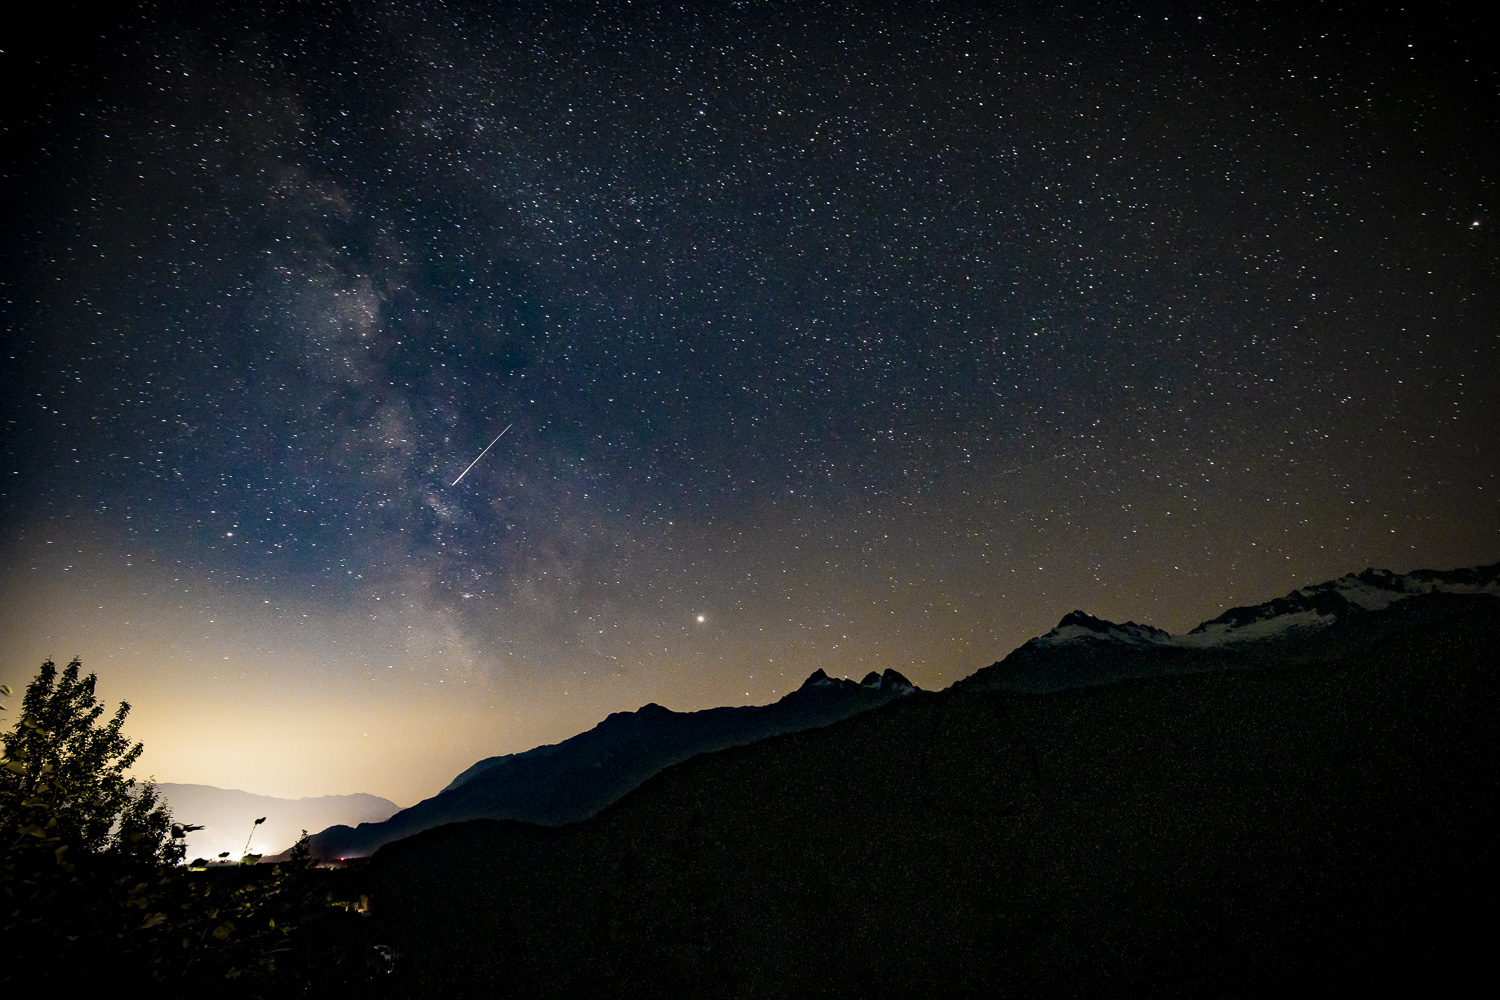 Milky Way and Perseid Meteor Shower from the Tantalus Lookout (001 of 3).jpg